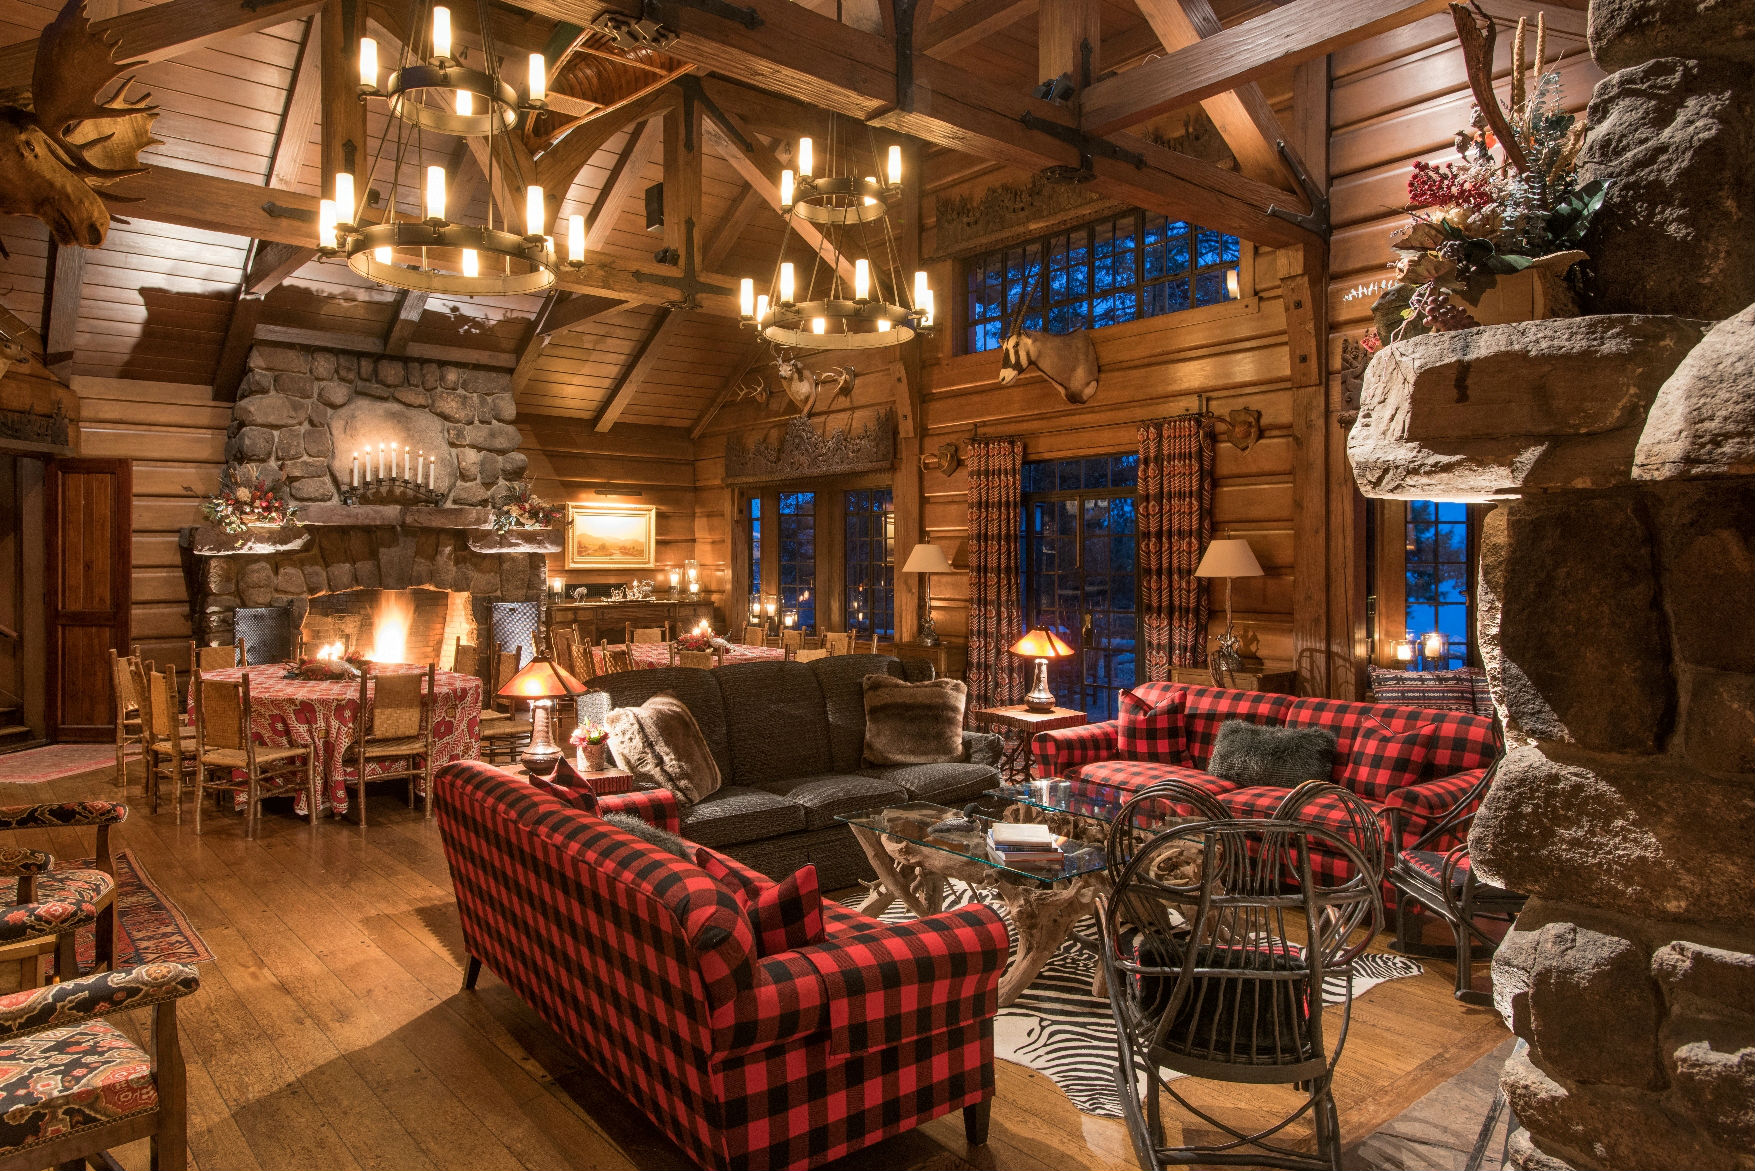 Six Spectacular Adirondack Great Camps You Can Stay In on tree house plans, lake lodge plans, lake gaston boat house, lake house snow, luxury houseboat floor plans, lake house boat designs, lake house kits, small houseboat plans, lake gaston waterfront rentals, custom houseboat plans, small 10x20 pool house plans, trailerable houseboat plans, lake house with boat garage, lake house mansions, lake house furniture, house barge plans, lake havasu houseboats, lake house with boat house, lake sloop plans,